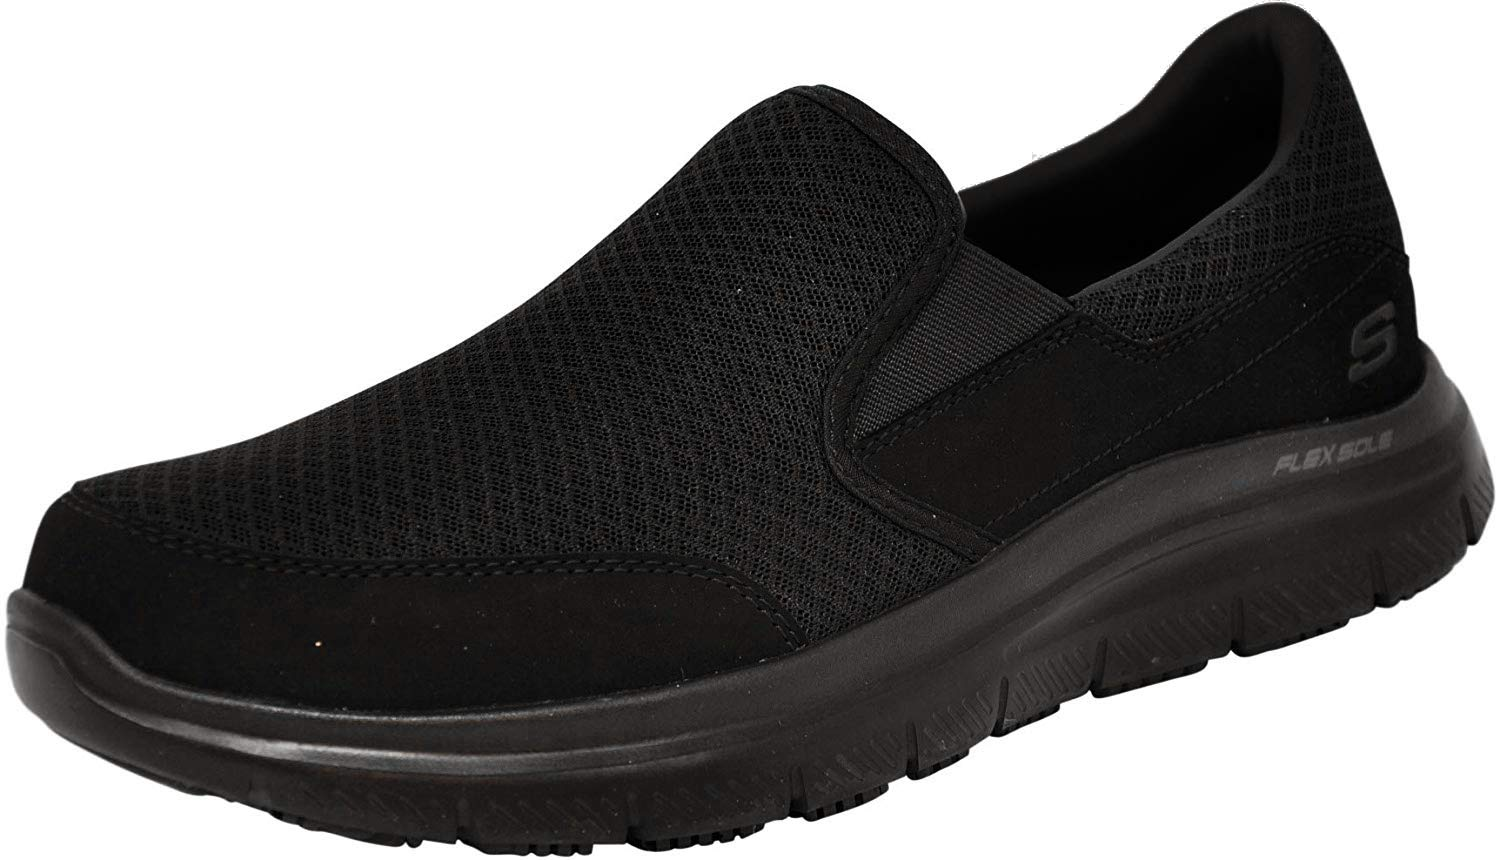 Skechers Black Advantage Resistant Mcallen